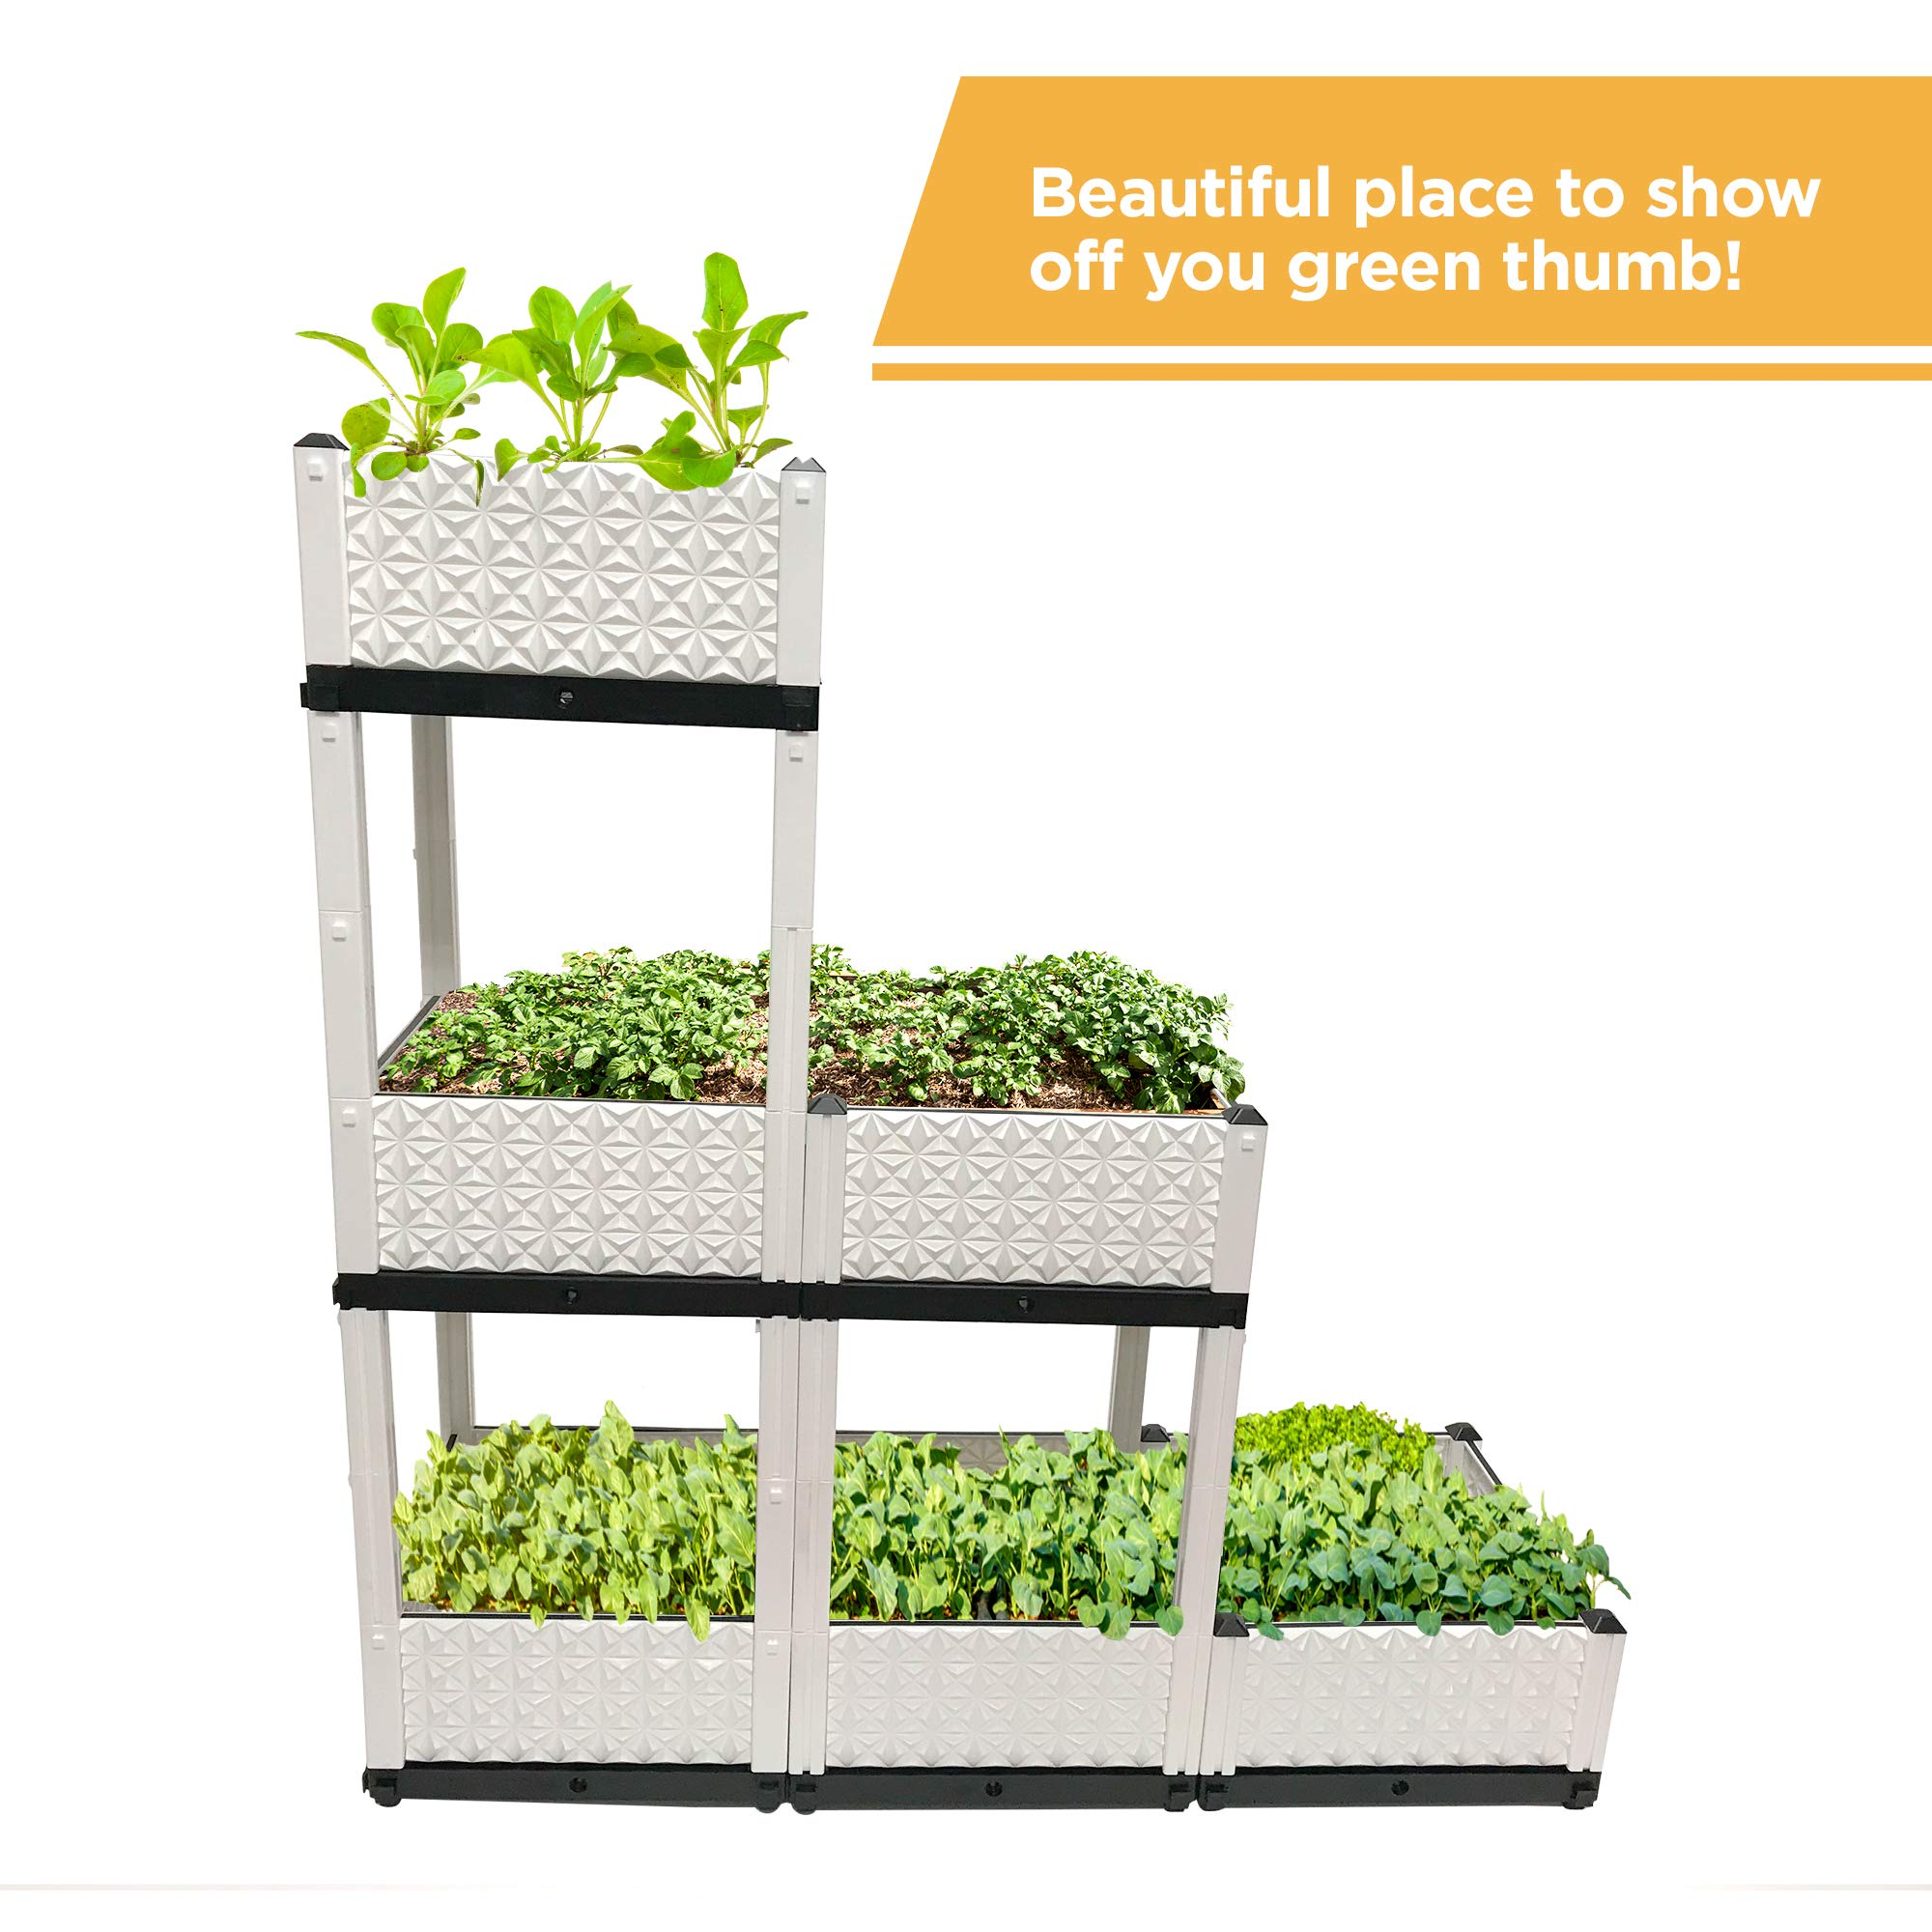 Six Raised Garden Beds for Planting | Each Box Measures 15 X 15 X 9 Inches | Herb Boxes for Indoor Gardening | Elevated Plant Bed for Vegetables and Flowers | Waterproof Rectangular Pots for Outdoor